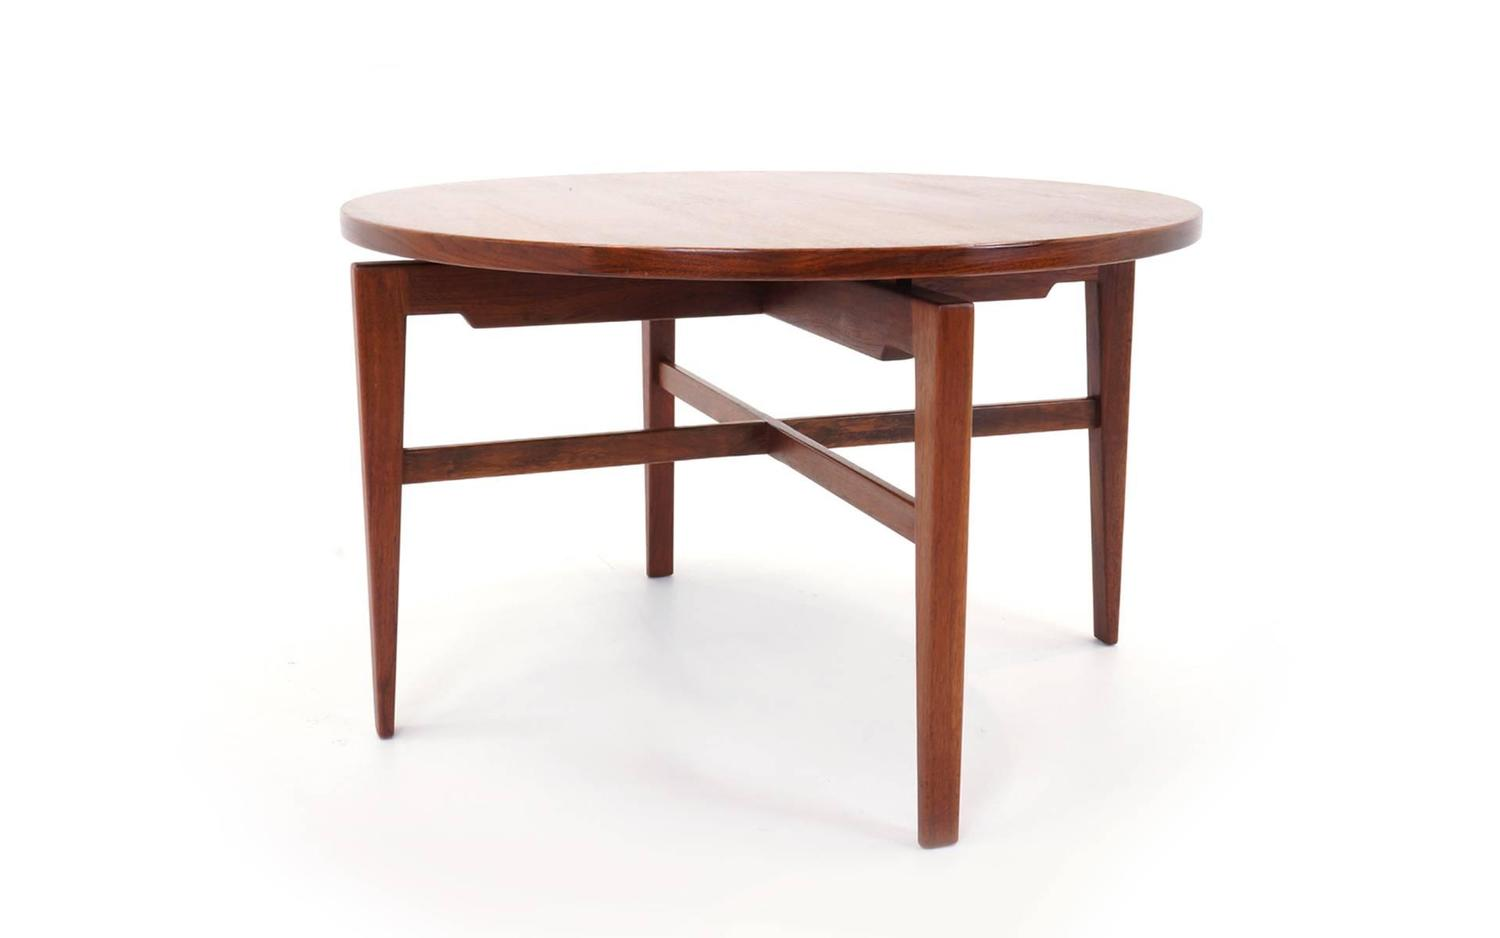 Revolving dining table img 0008 1 jpg circular for Kitchen cabinets 08857